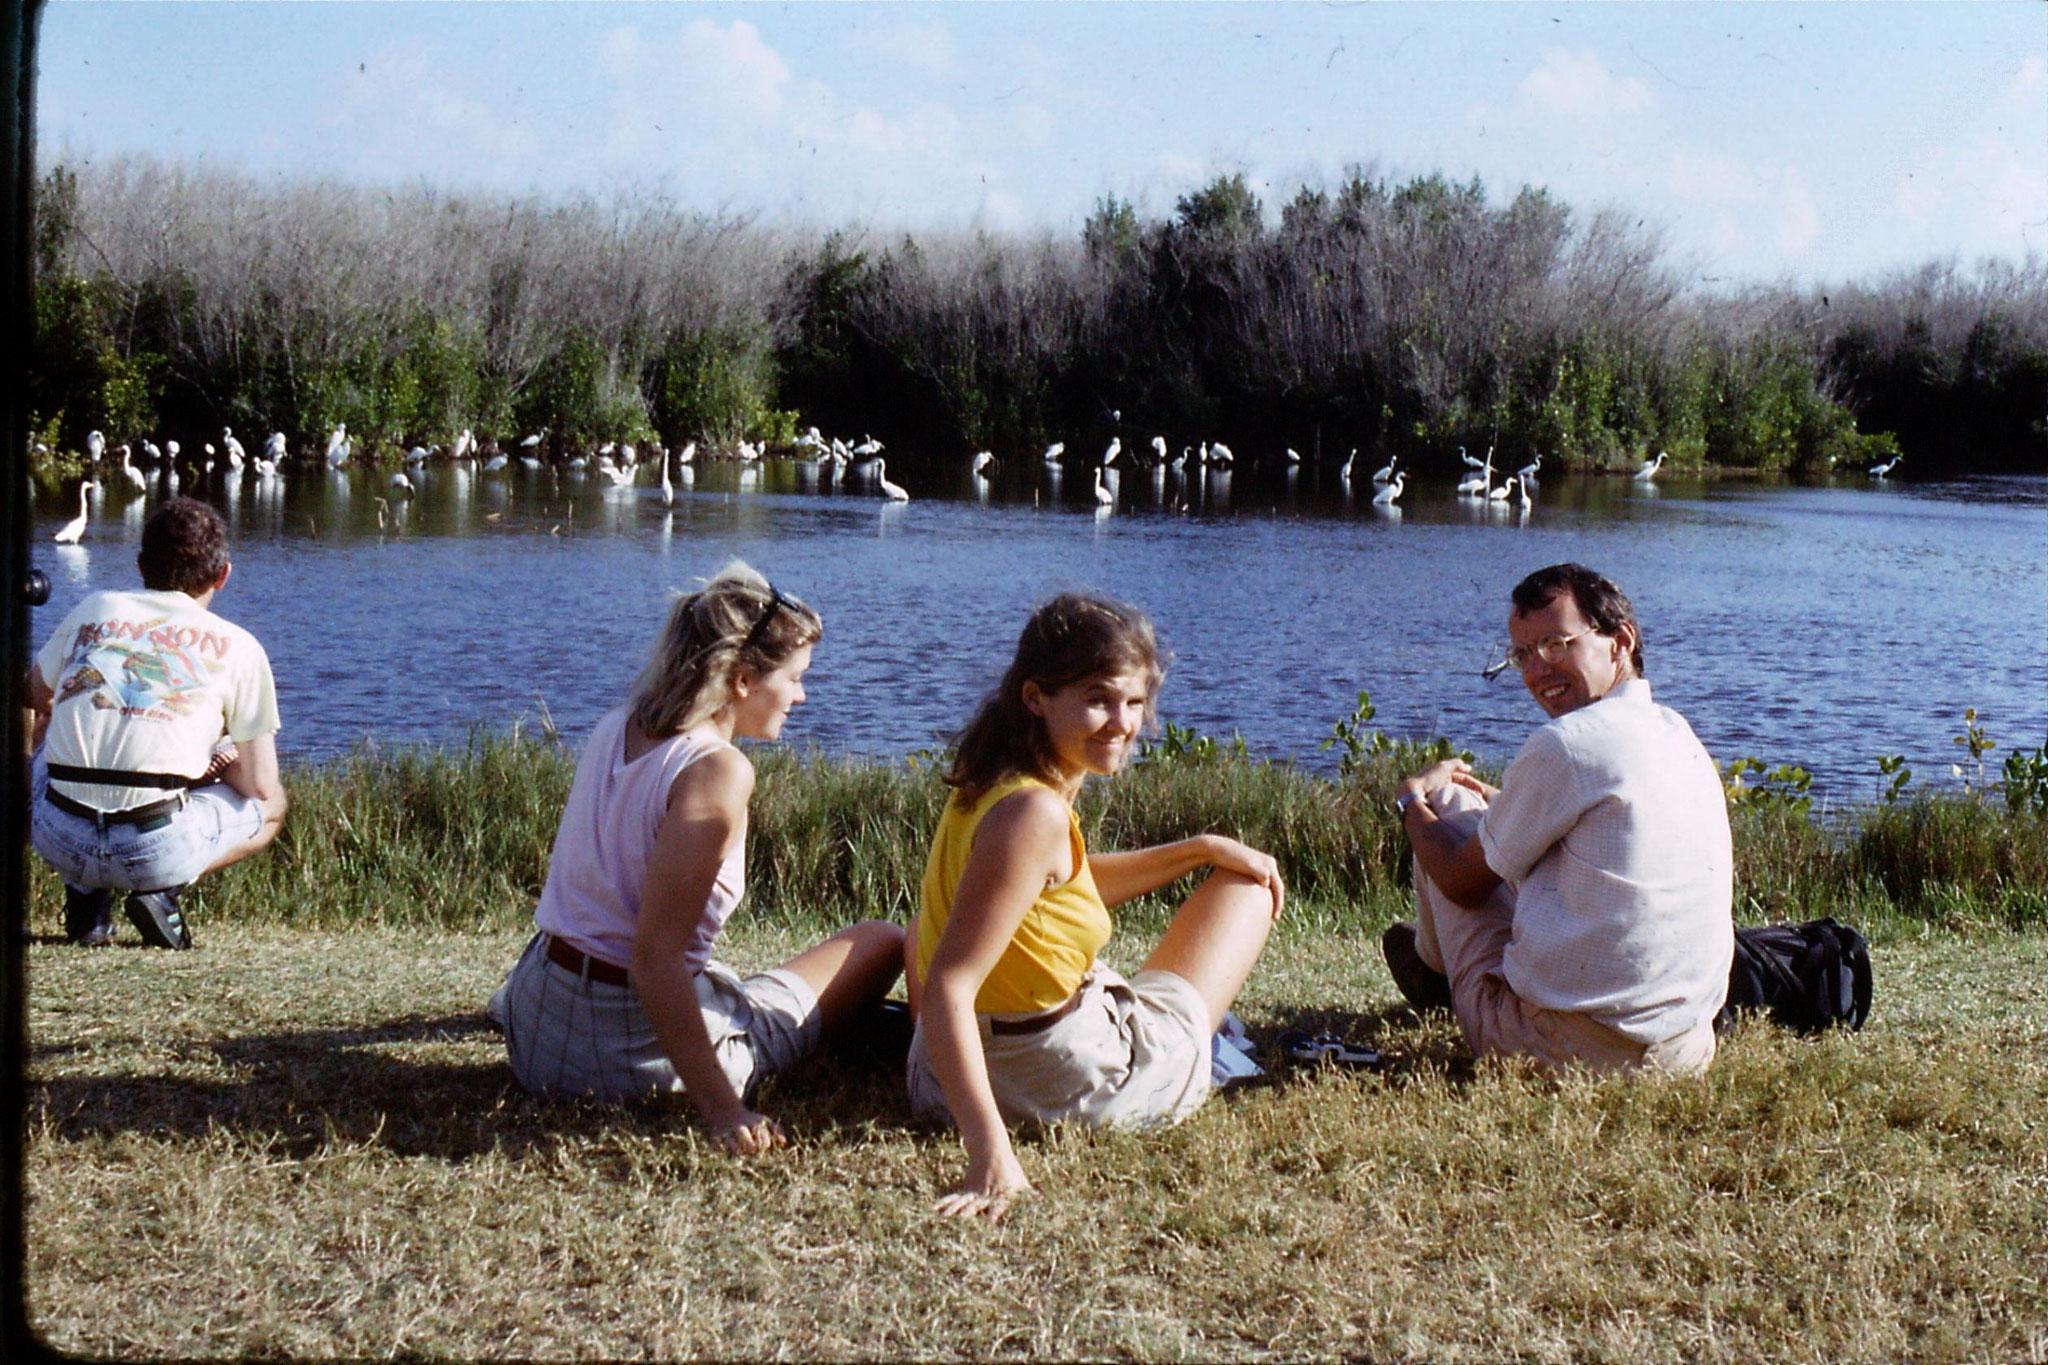 21/12/1990: 12: Everglades, A, C and R